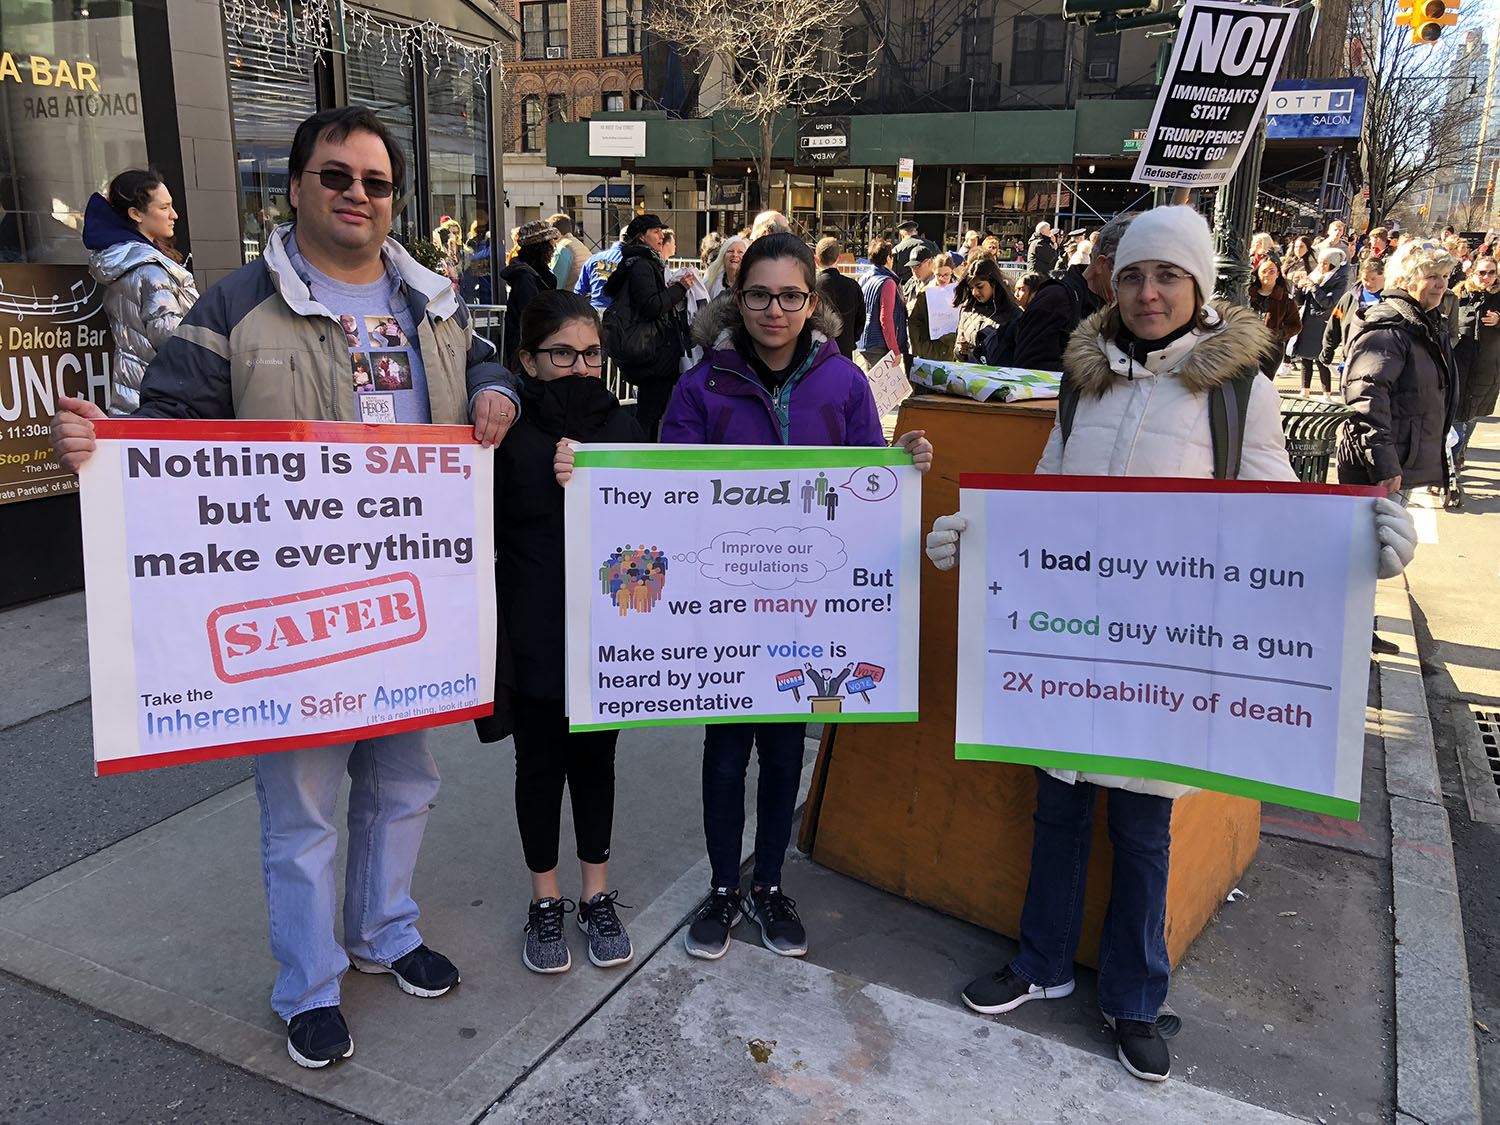 <div class='meta'><div class='origin-logo' data-origin='none'></div><span class='caption-text' data-credit=''>Thousands gathered on the Upper West Side to protest and march for gun control.</span></div>